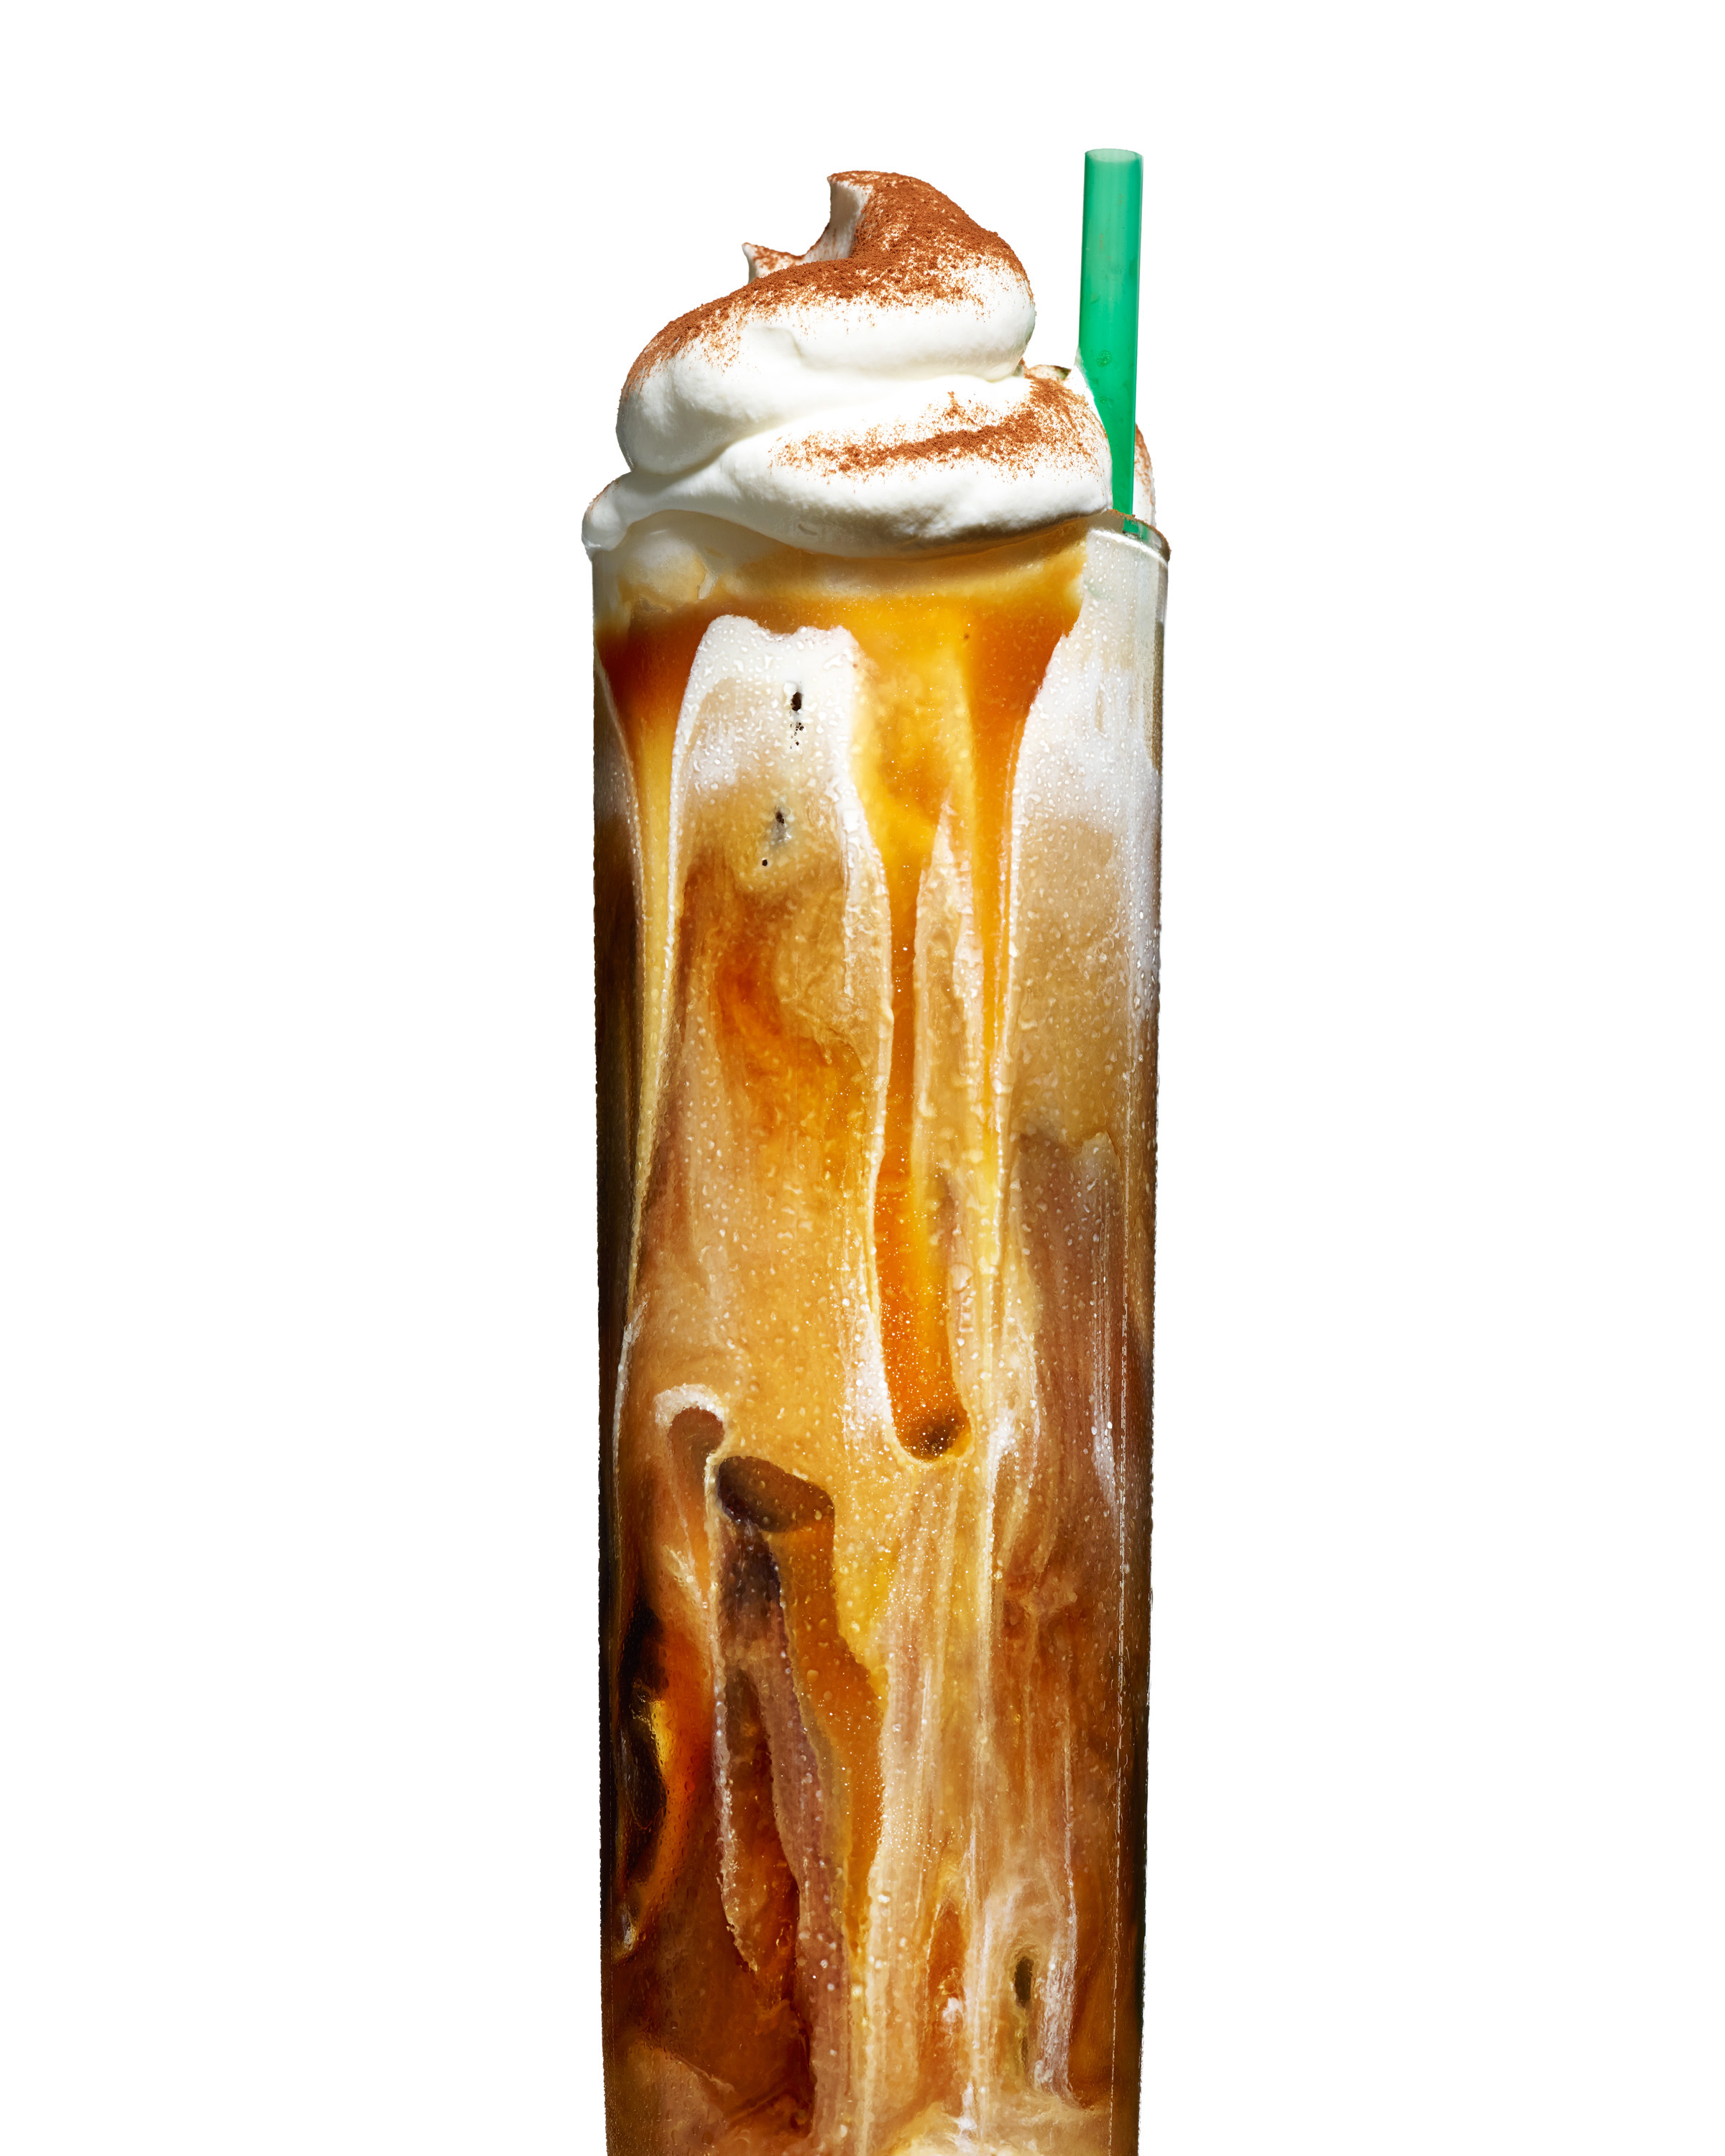 Robyn Valarik San Francisco Based Food & Drink Stylist - tall, drink, coffee, whip, whipped-cream, caramel, drizzle, drip, action, straw, Starbucks, creamy, epic, food-photography